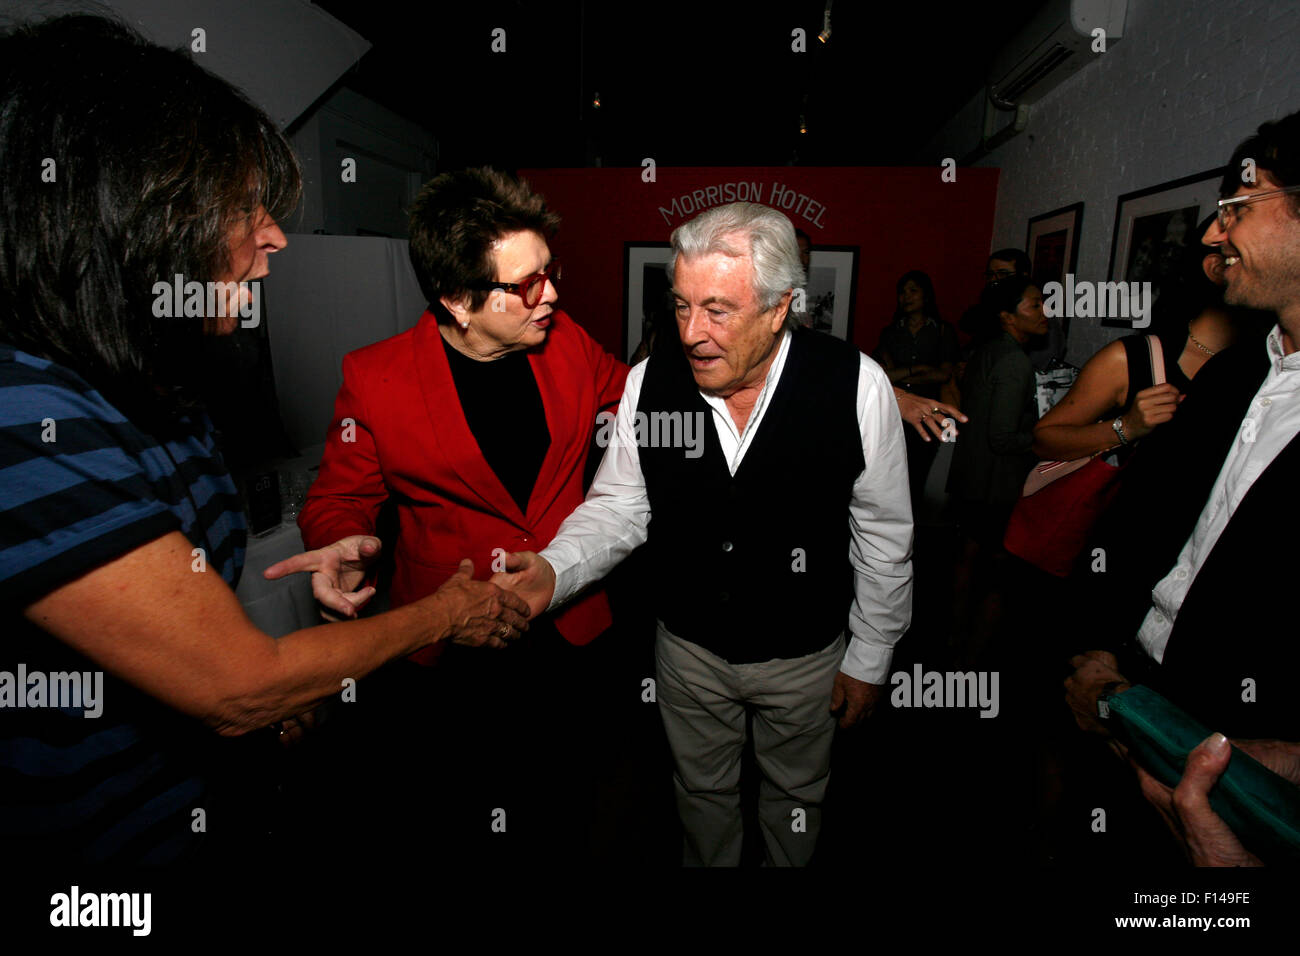 New York, USA. 26th August, 2015. Tennis legend Billie Jean King speaks with the british photographic legend Terry - Stock Image